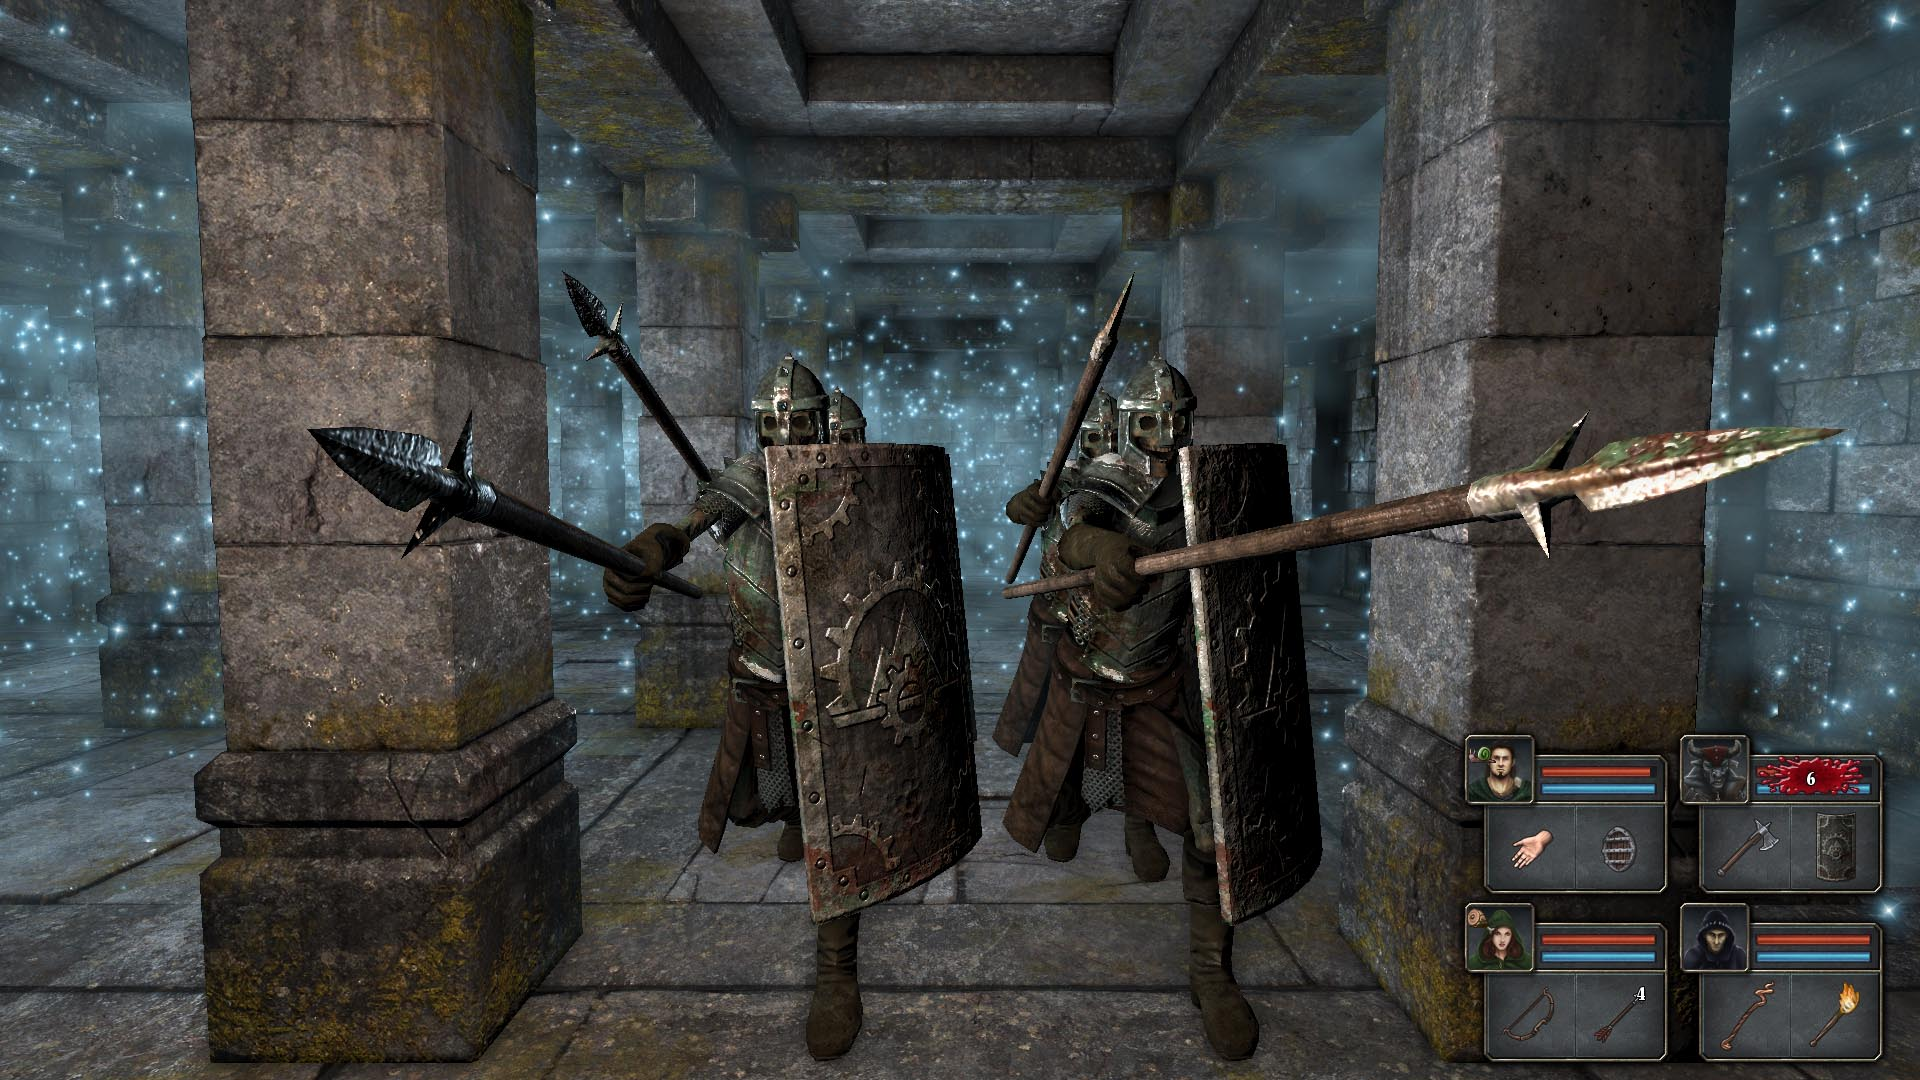 PC dungeon crawler Legend of Grimrock has been officially announced for iOS